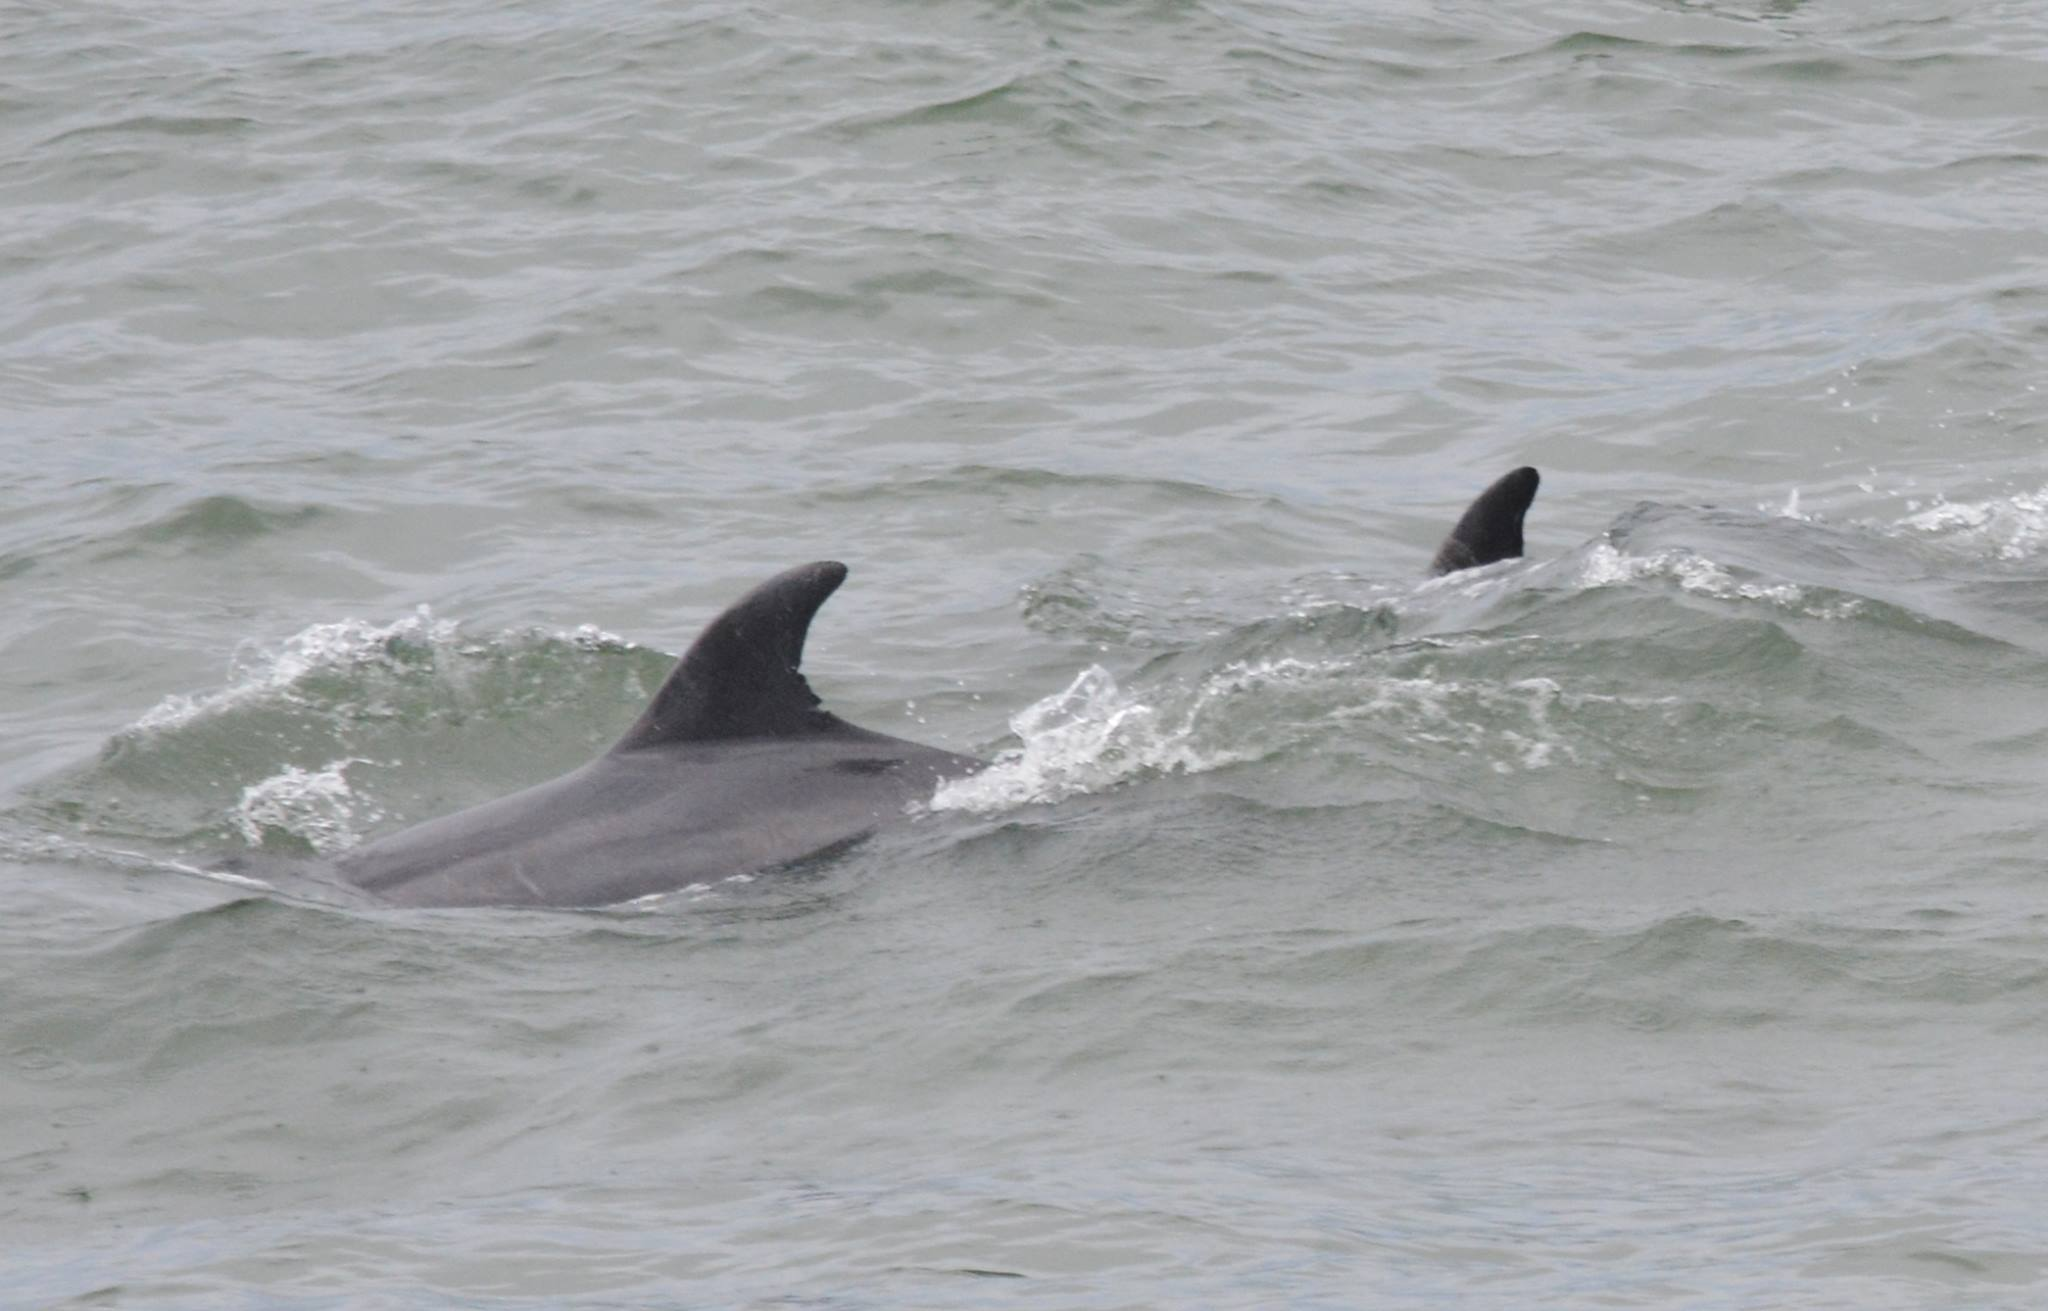 Whales feeding at Pacifica Pier today Photos: Vinny Vance